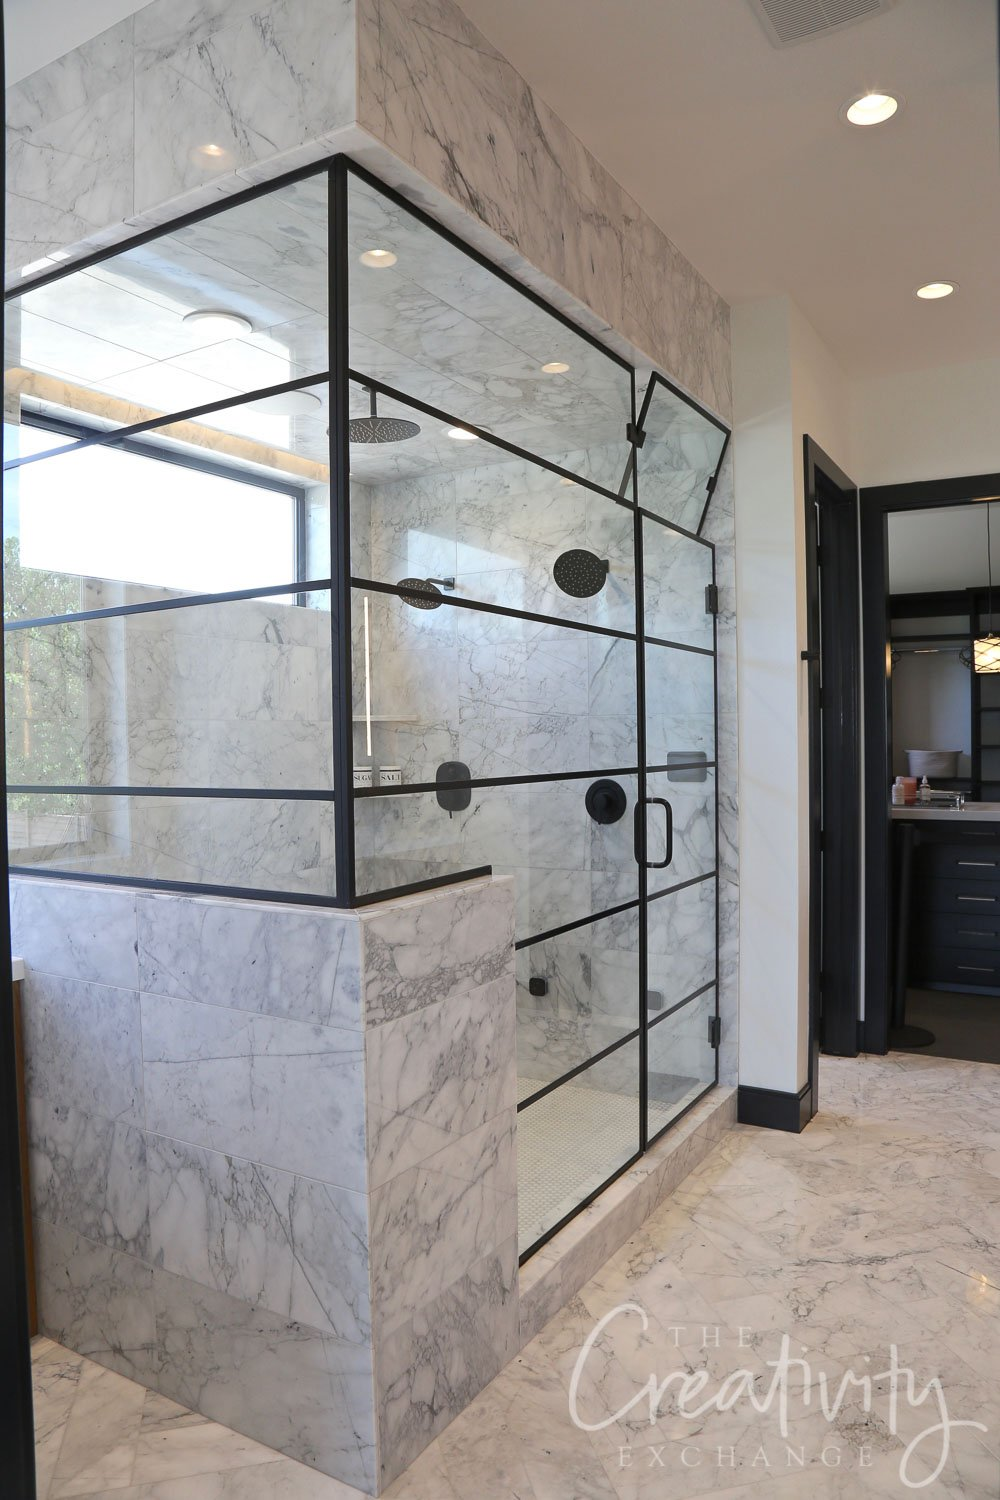 Large marble shower with black industrial shower door and glass